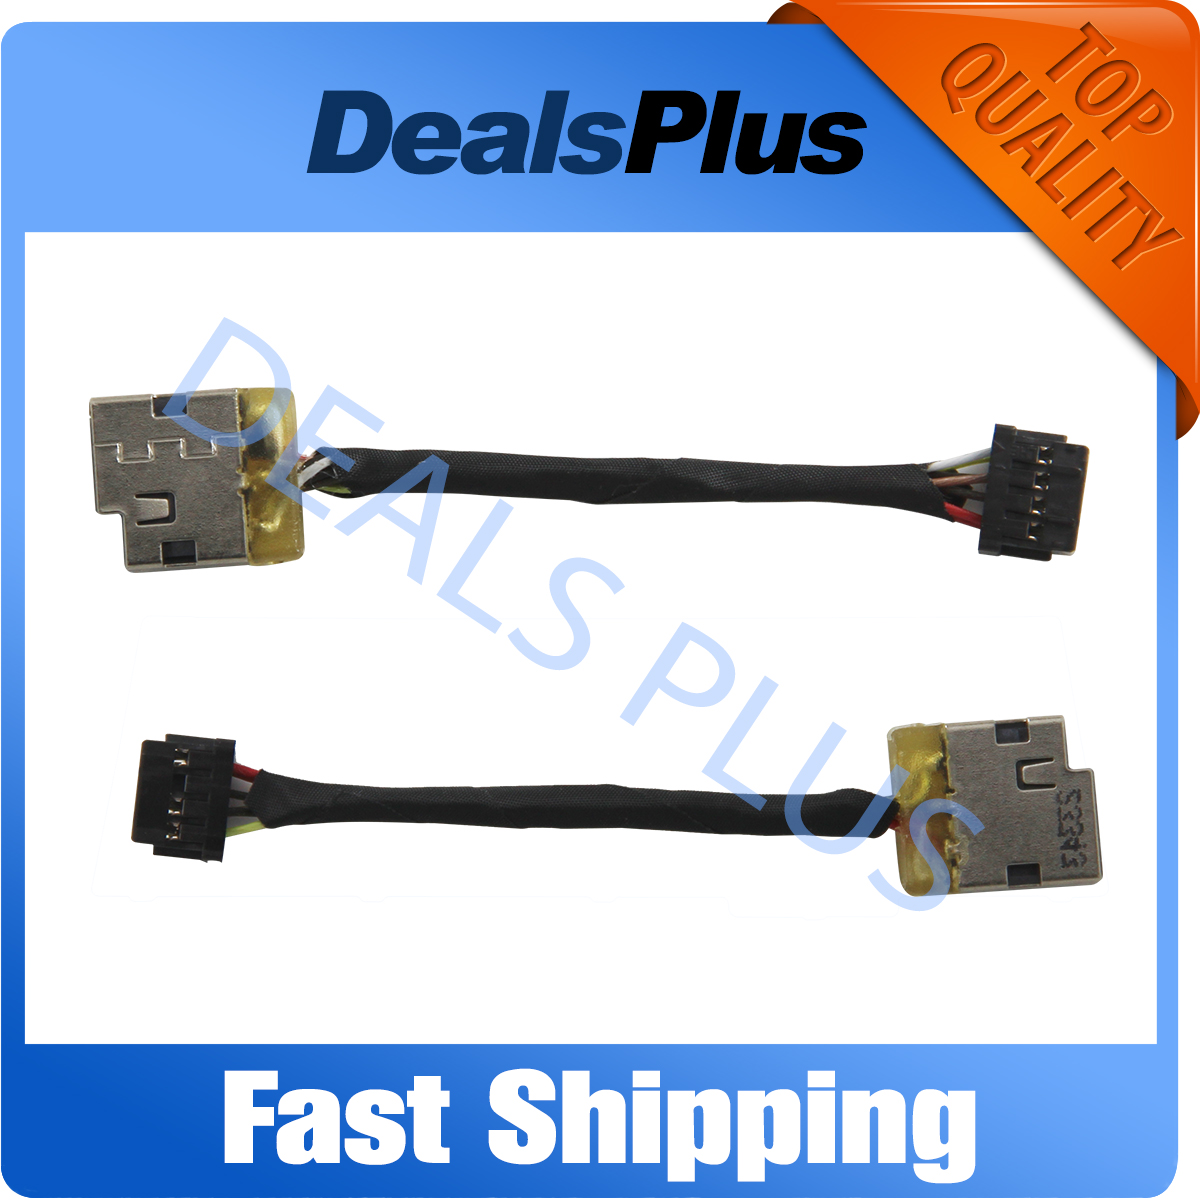 New DC Power Jack Cable For HP 15-F 15-N 15-P 15-K 10-E 15-F009WM 15-F100DX Series 730932-SD1 730932-FD1 730932-YD1 732067-001